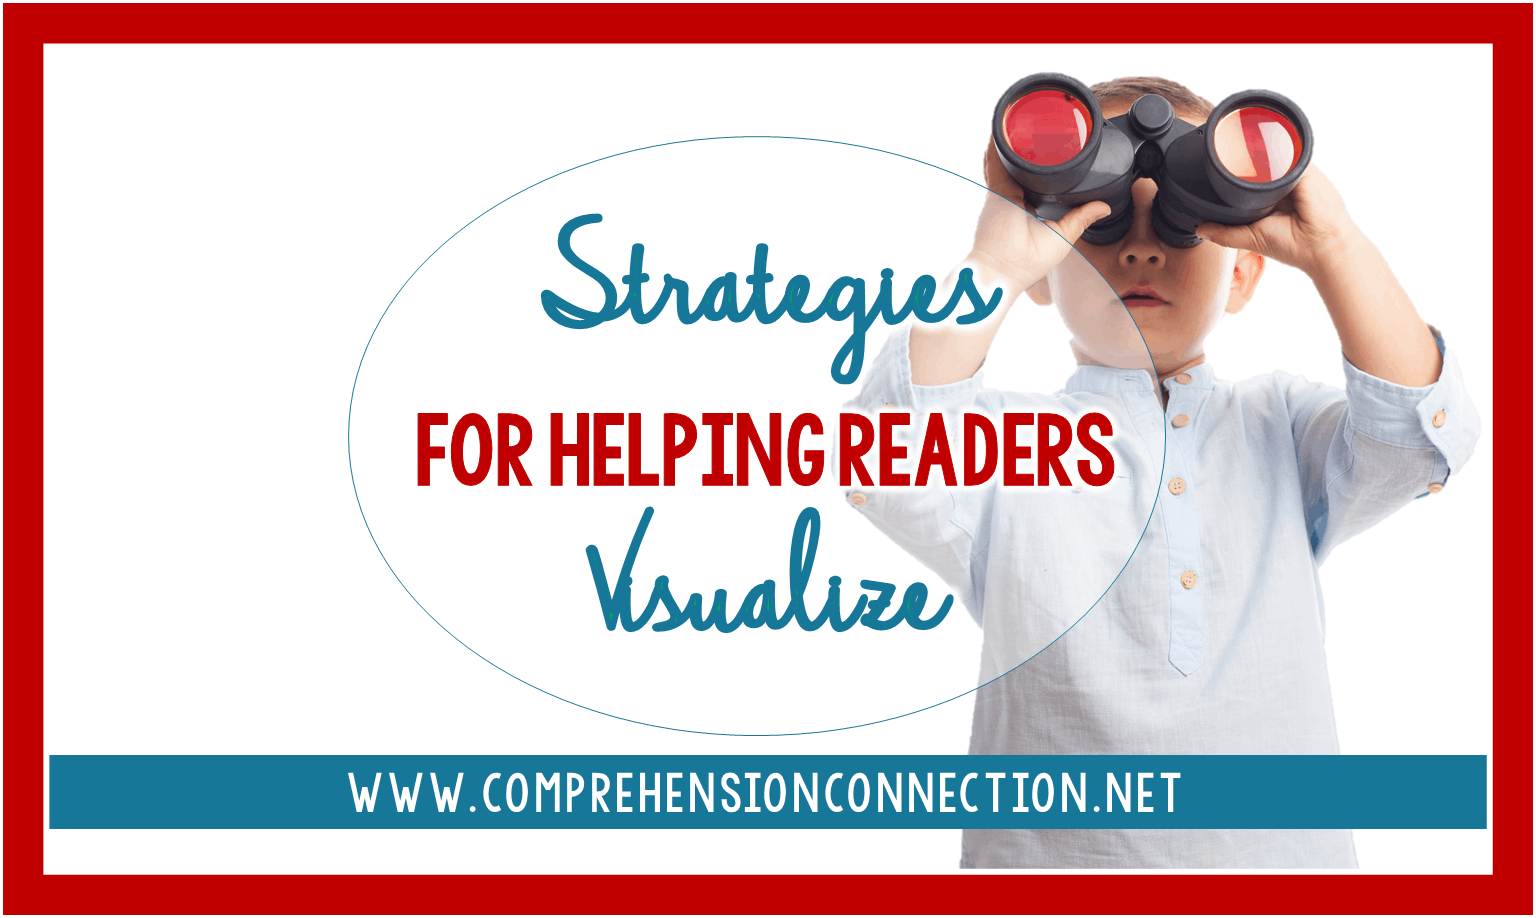 For some readers, visualizing is a challenge. This post includes suggestions using concrete objects to scaffold instruction.